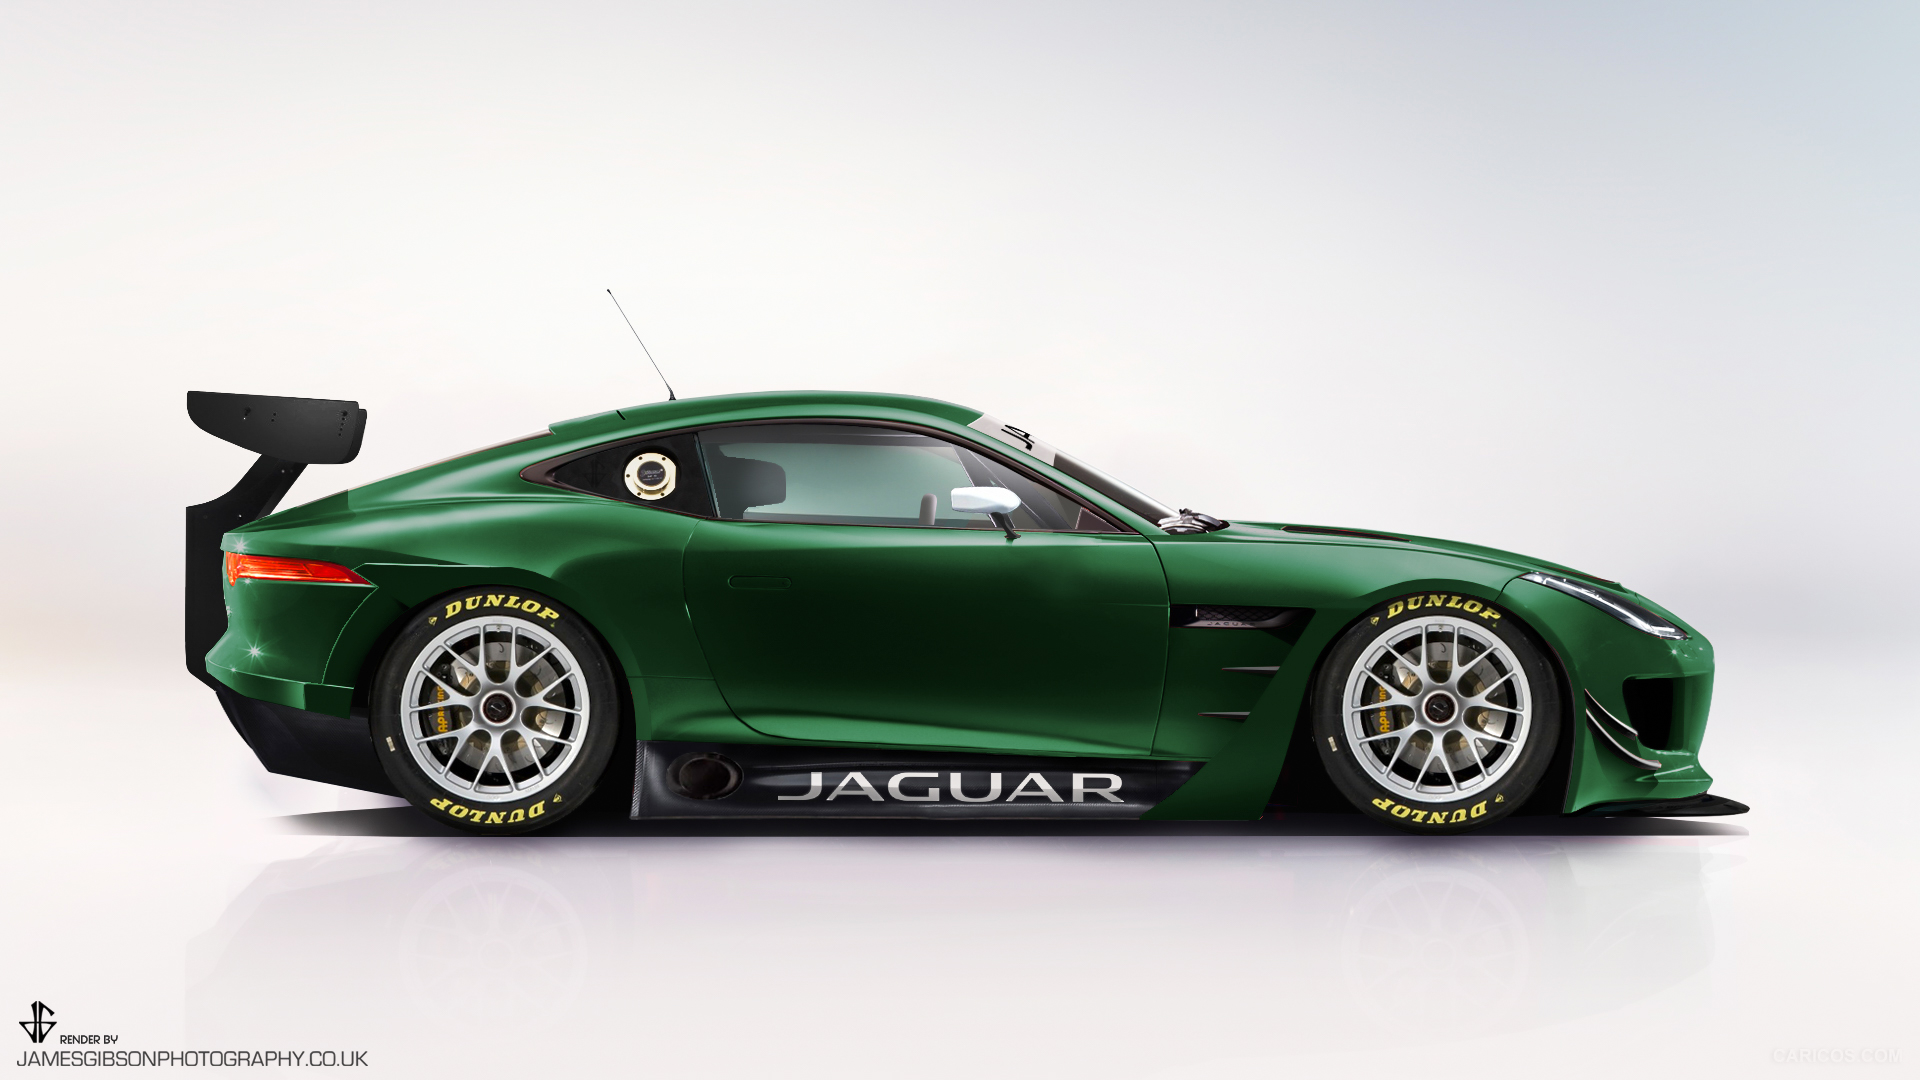 Jaguar Ftype GT3 render - James Gibson Photography